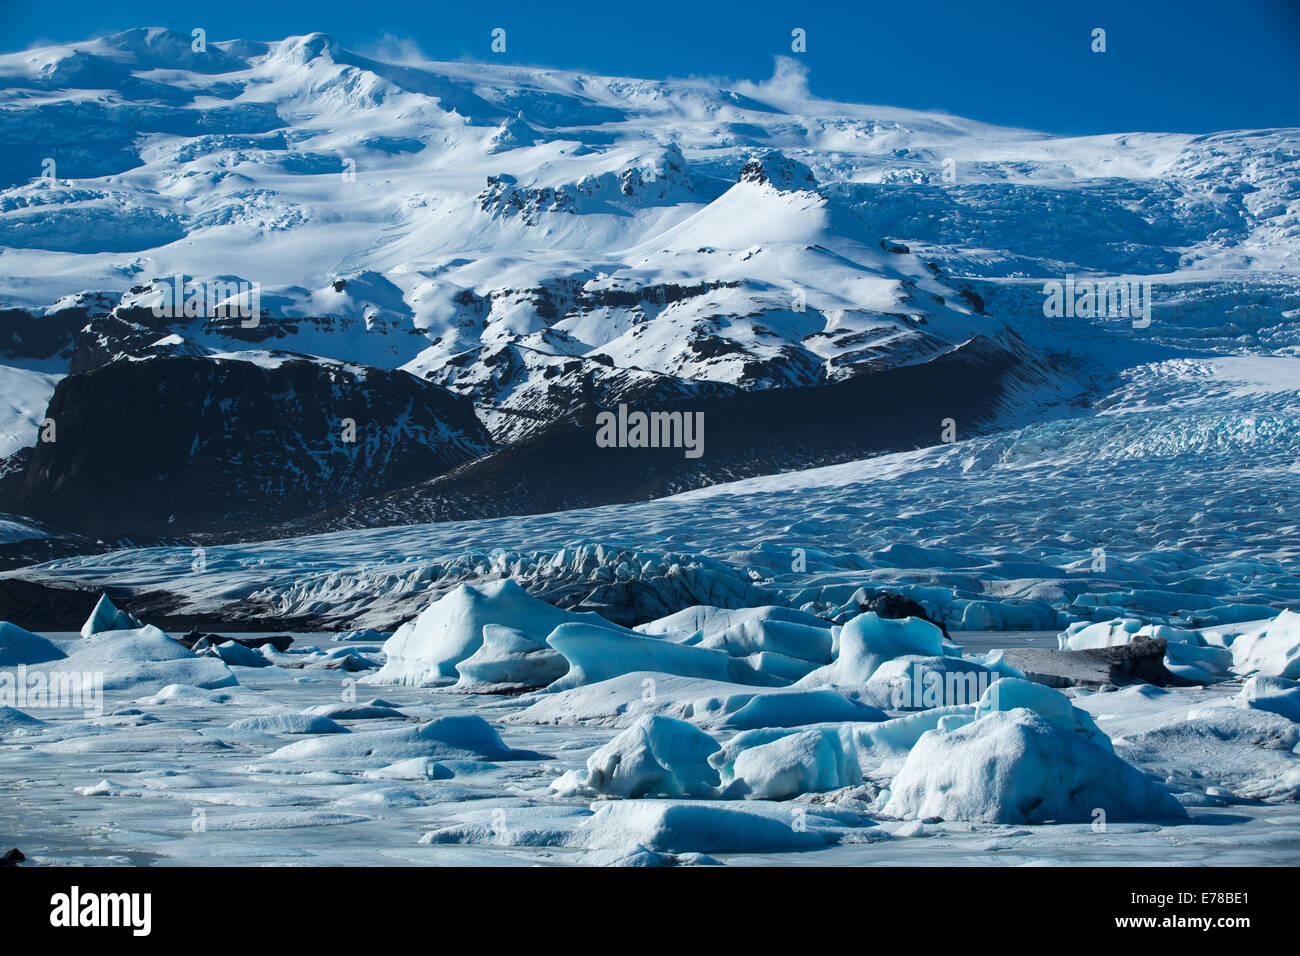 the Vatnajokull Glacier decending to sea level at Fjallsarlon, eastern Iceland Stock Photo